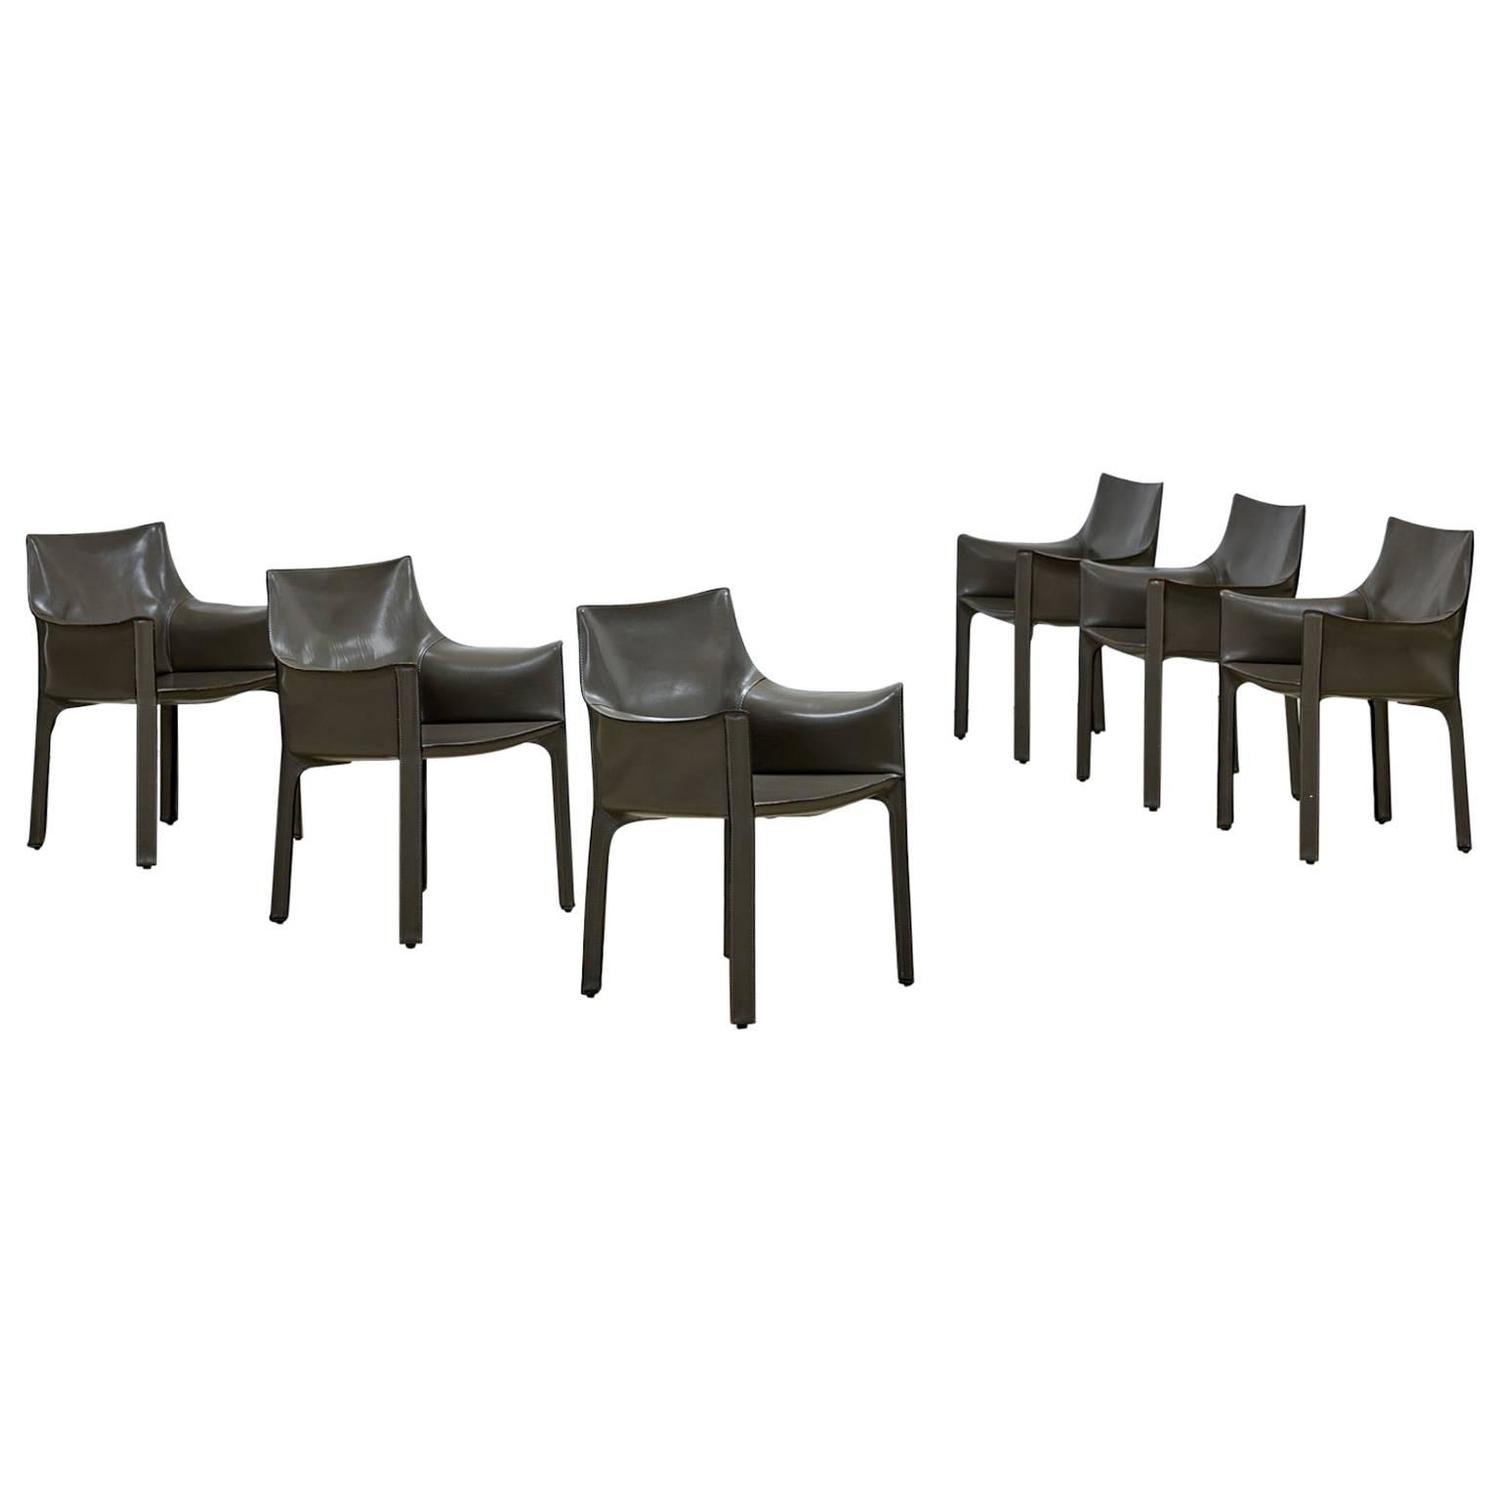 Mario Bellini Cab Chairs Set of Six For Sale at 1stdibs